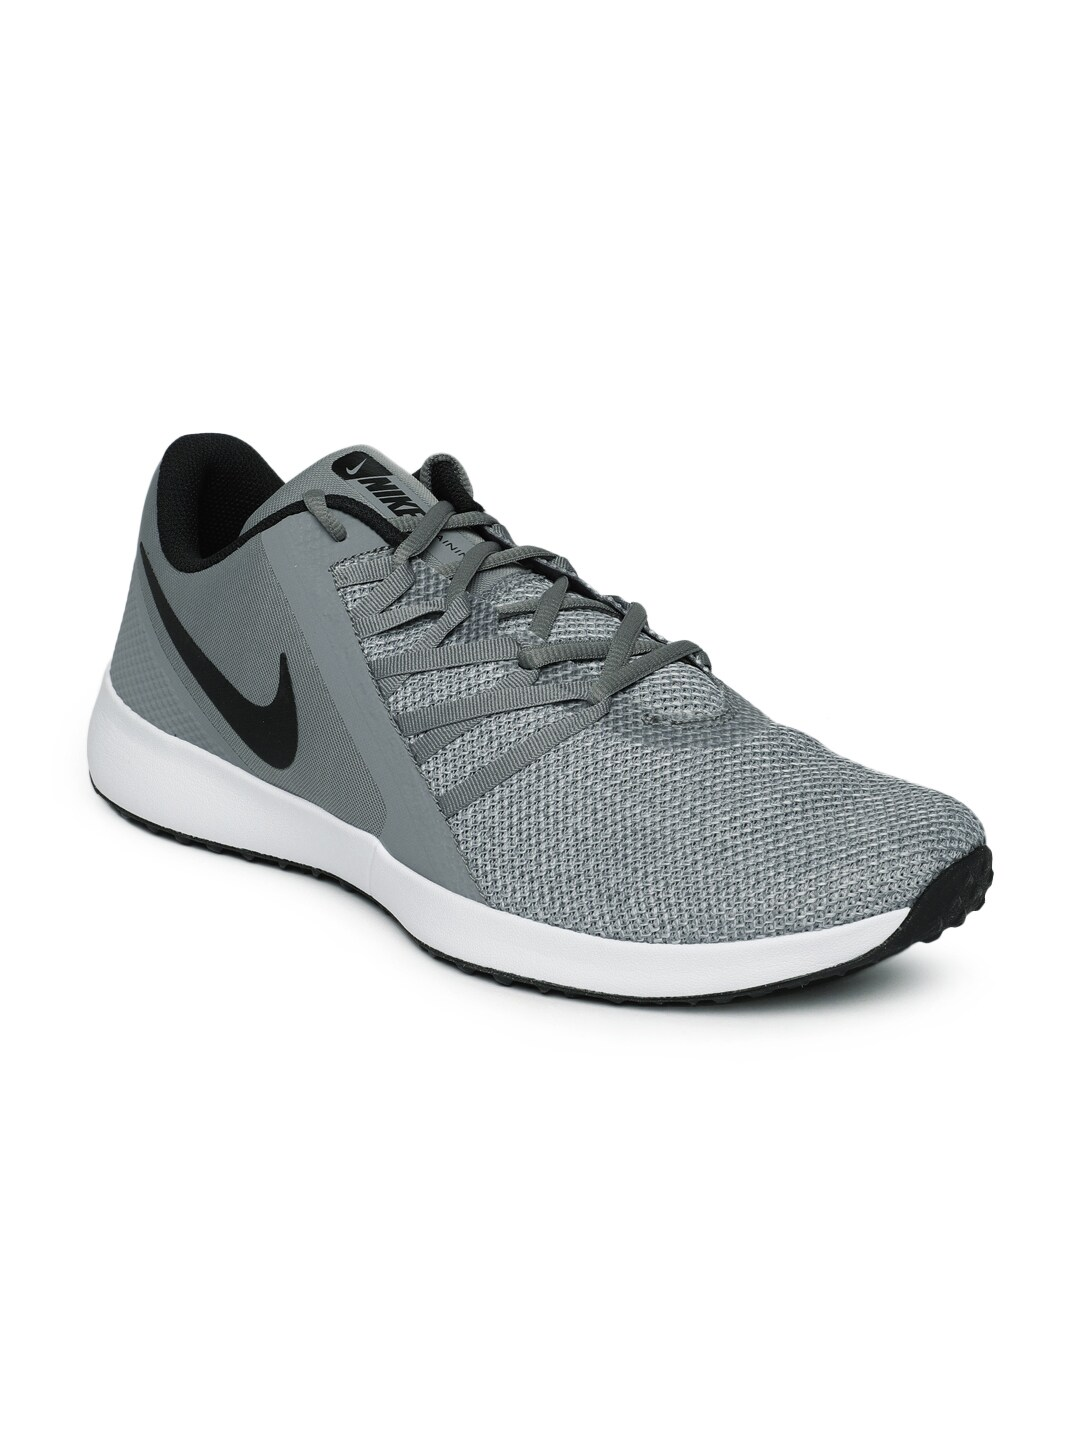 05e9356744 Nike Shoes - Buy Nike Shoes for Men